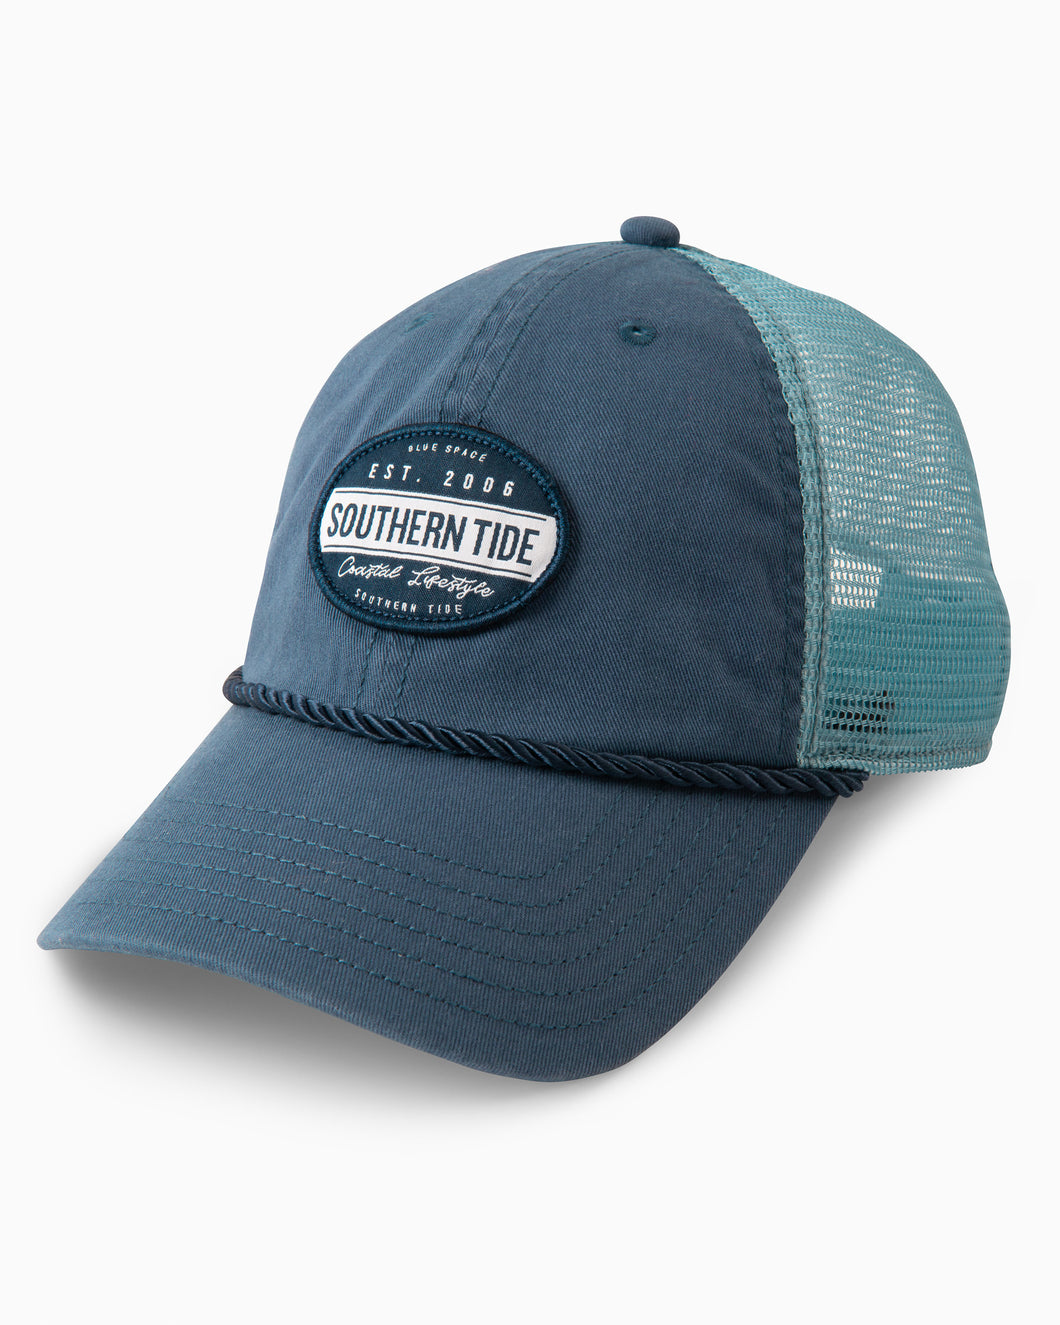 Southern Tide Coastal Lifestyle Patch Trucker Hat | Blue